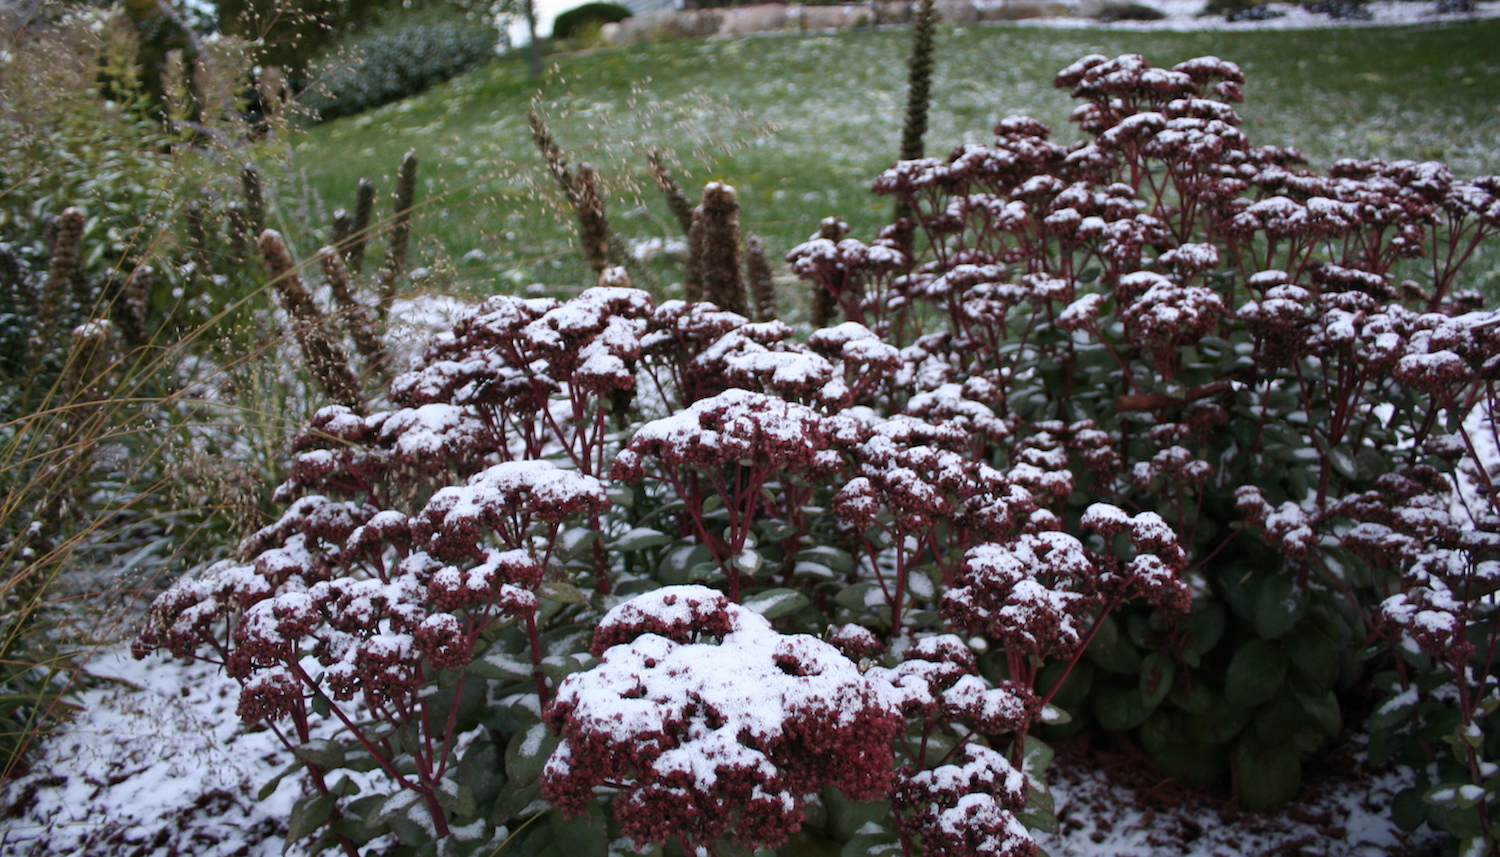 October snow on sedum